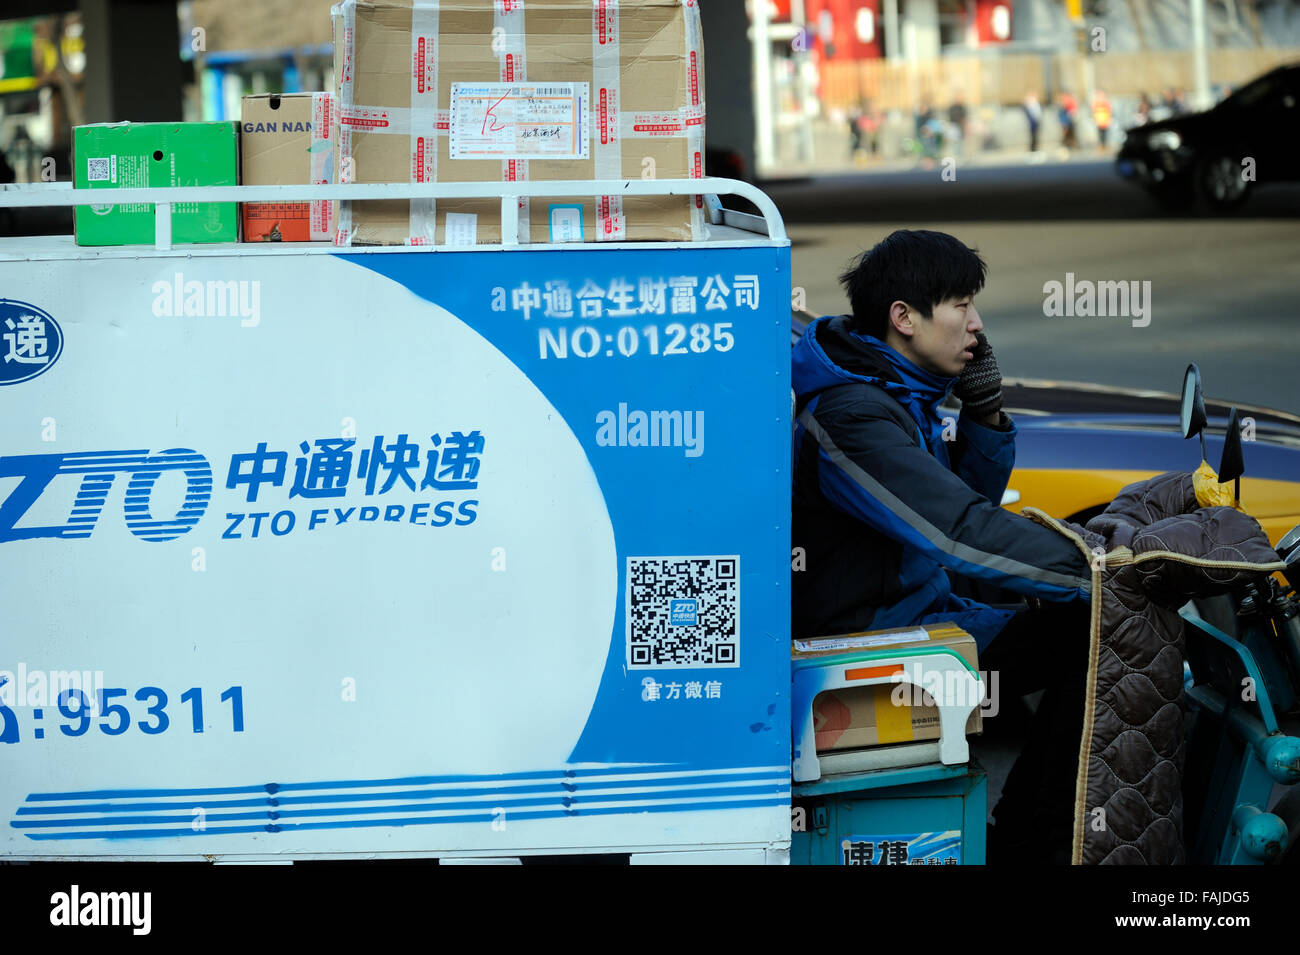 An electric tricycle for online-shopping express delivery shuttles in the street in Beijing, China. - Stock Image